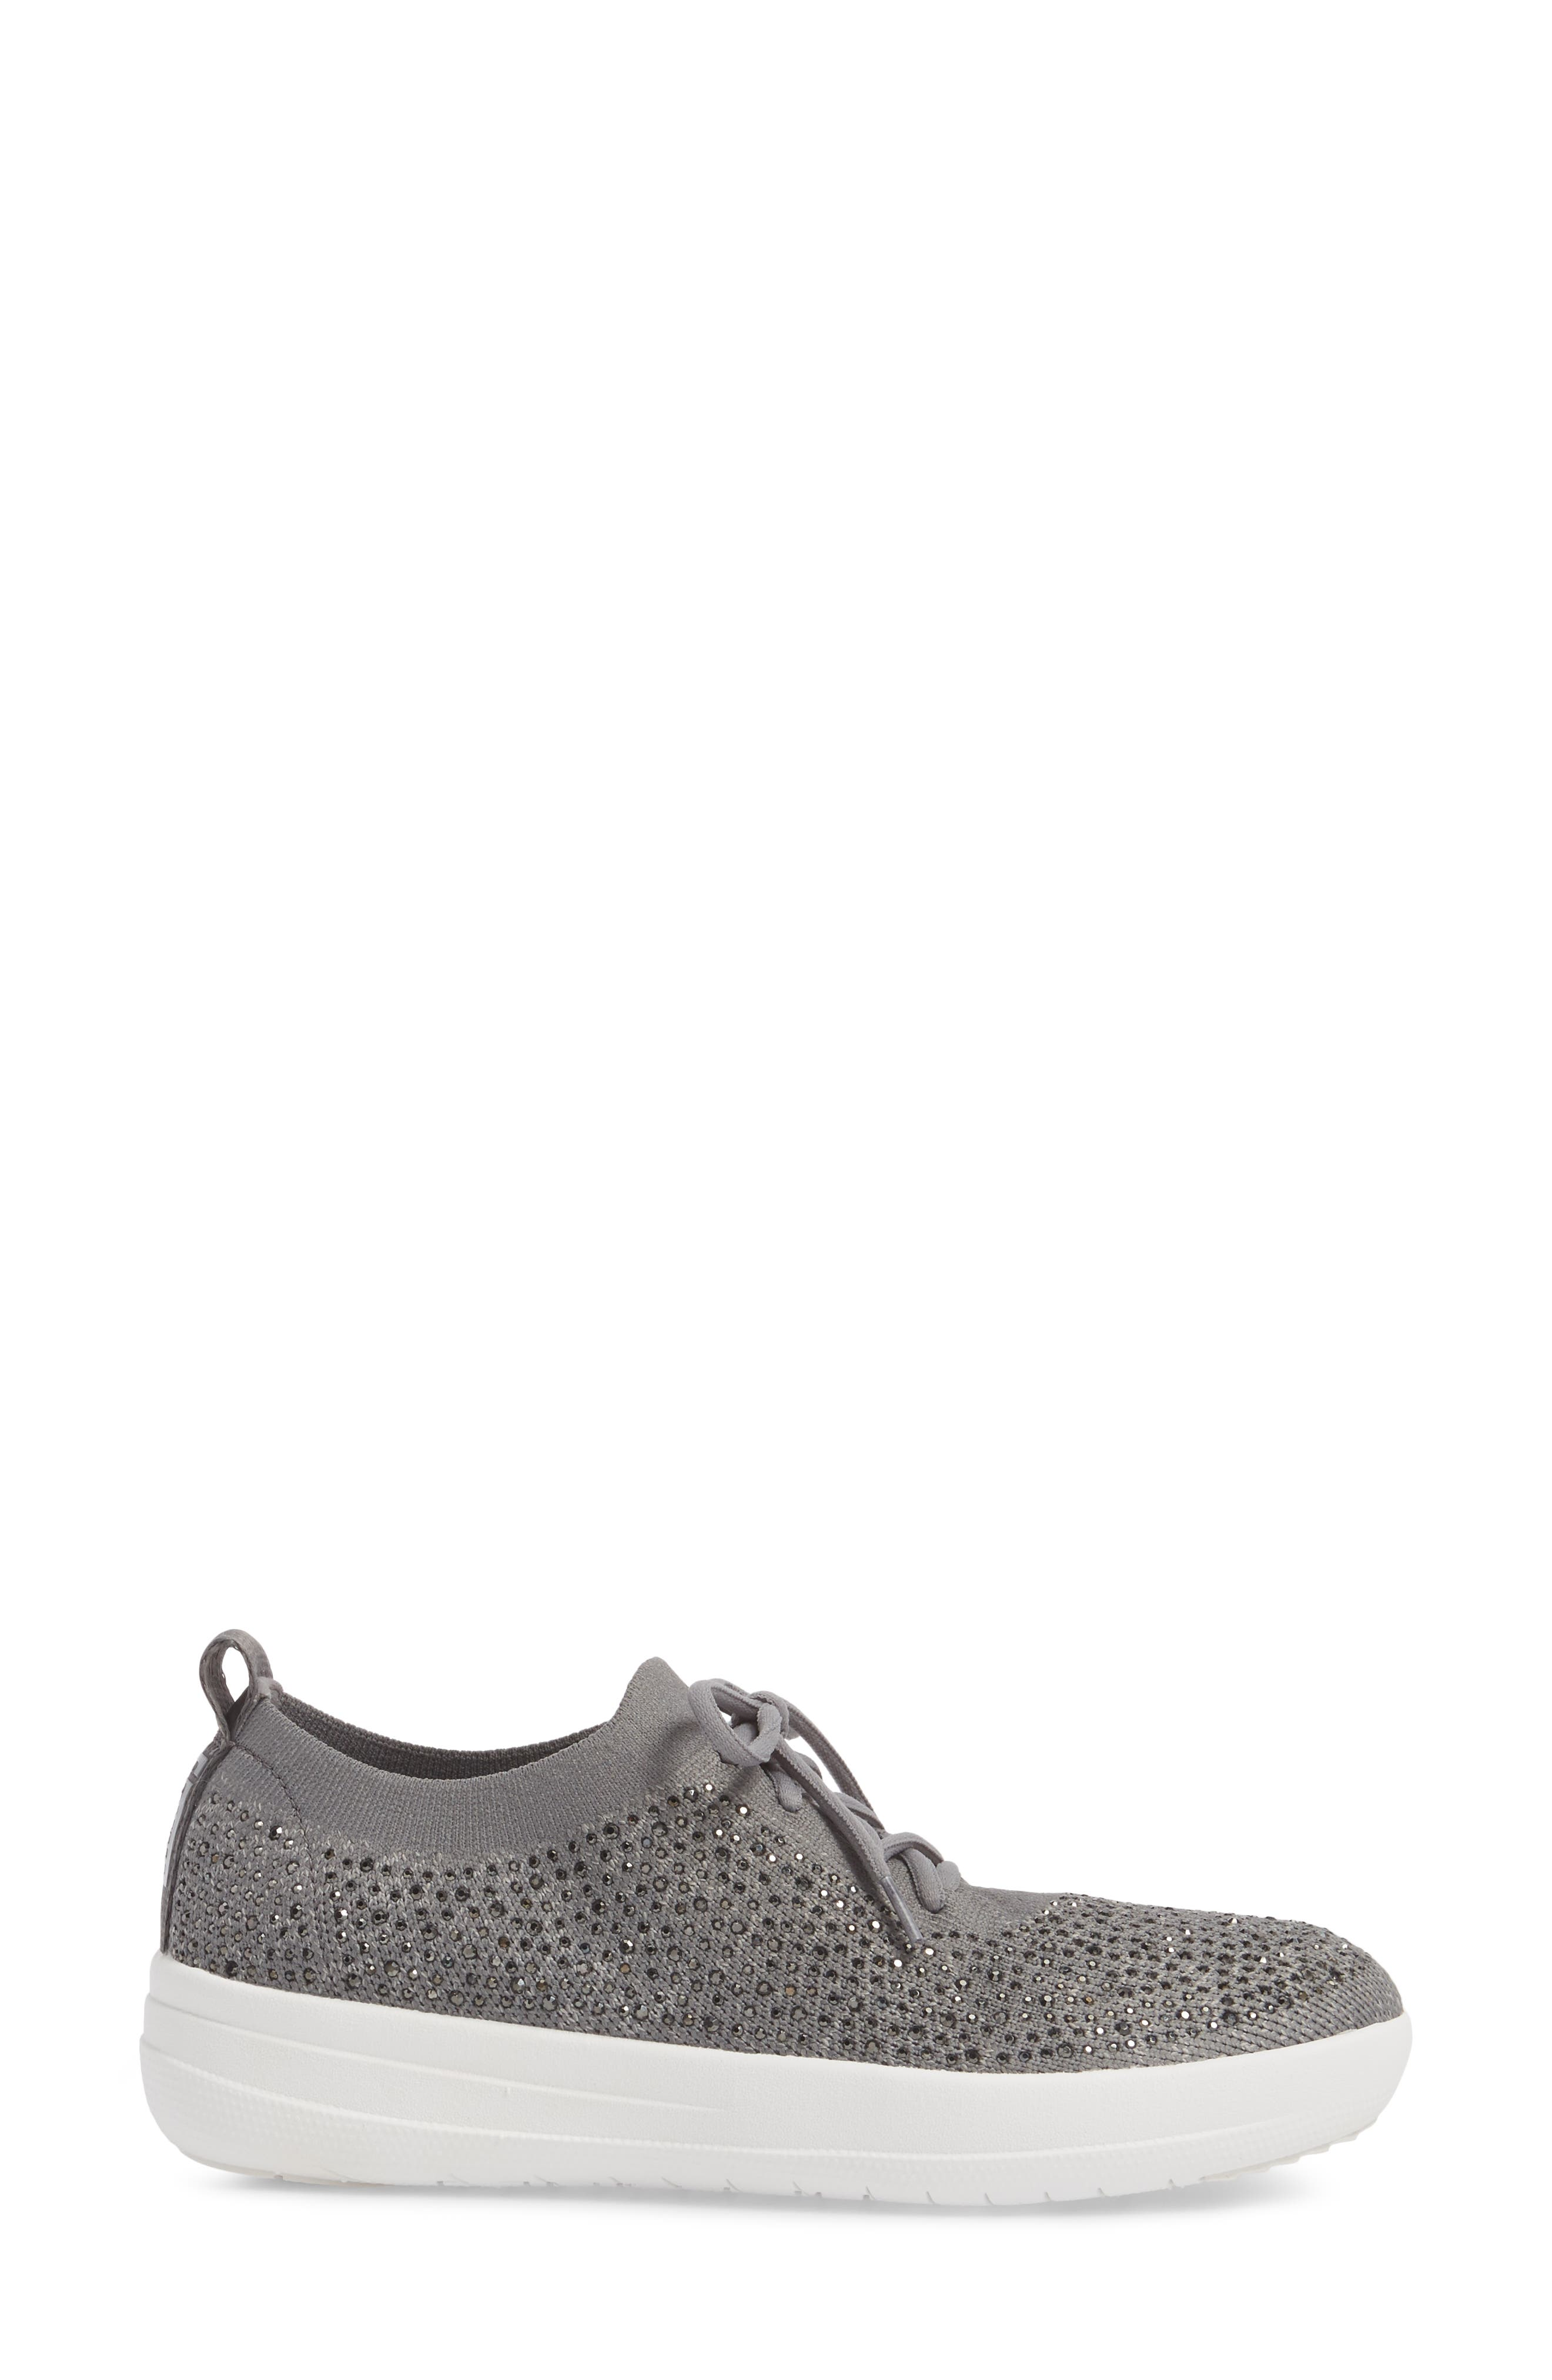 FITFLOP, Uberknit<sup>™</sup> F-Sporty Sneaker, Alternate thumbnail 3, color, CHARCOAL/ DUSTY GREY